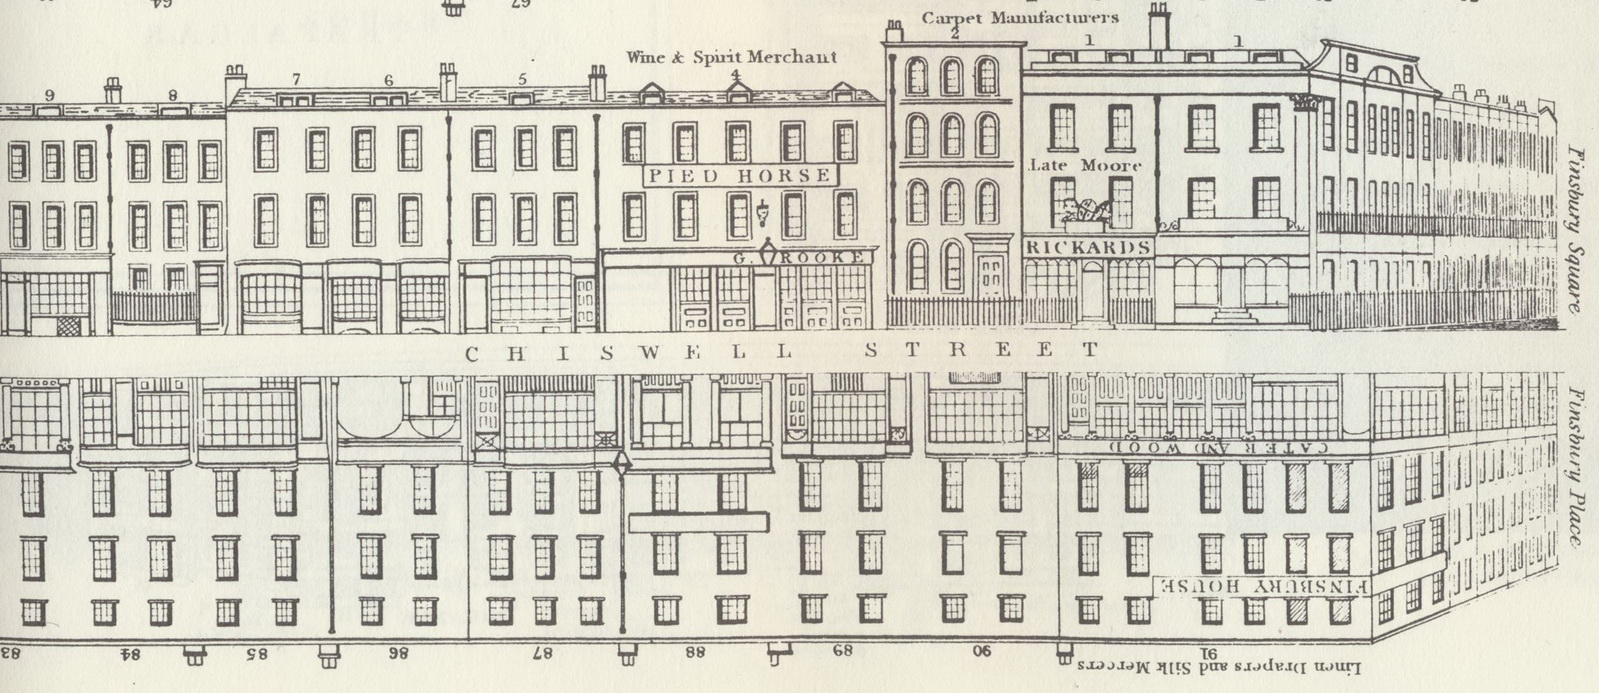 No 2 Chiswell Street, thought to be location of home of George and Elizabeth Dance